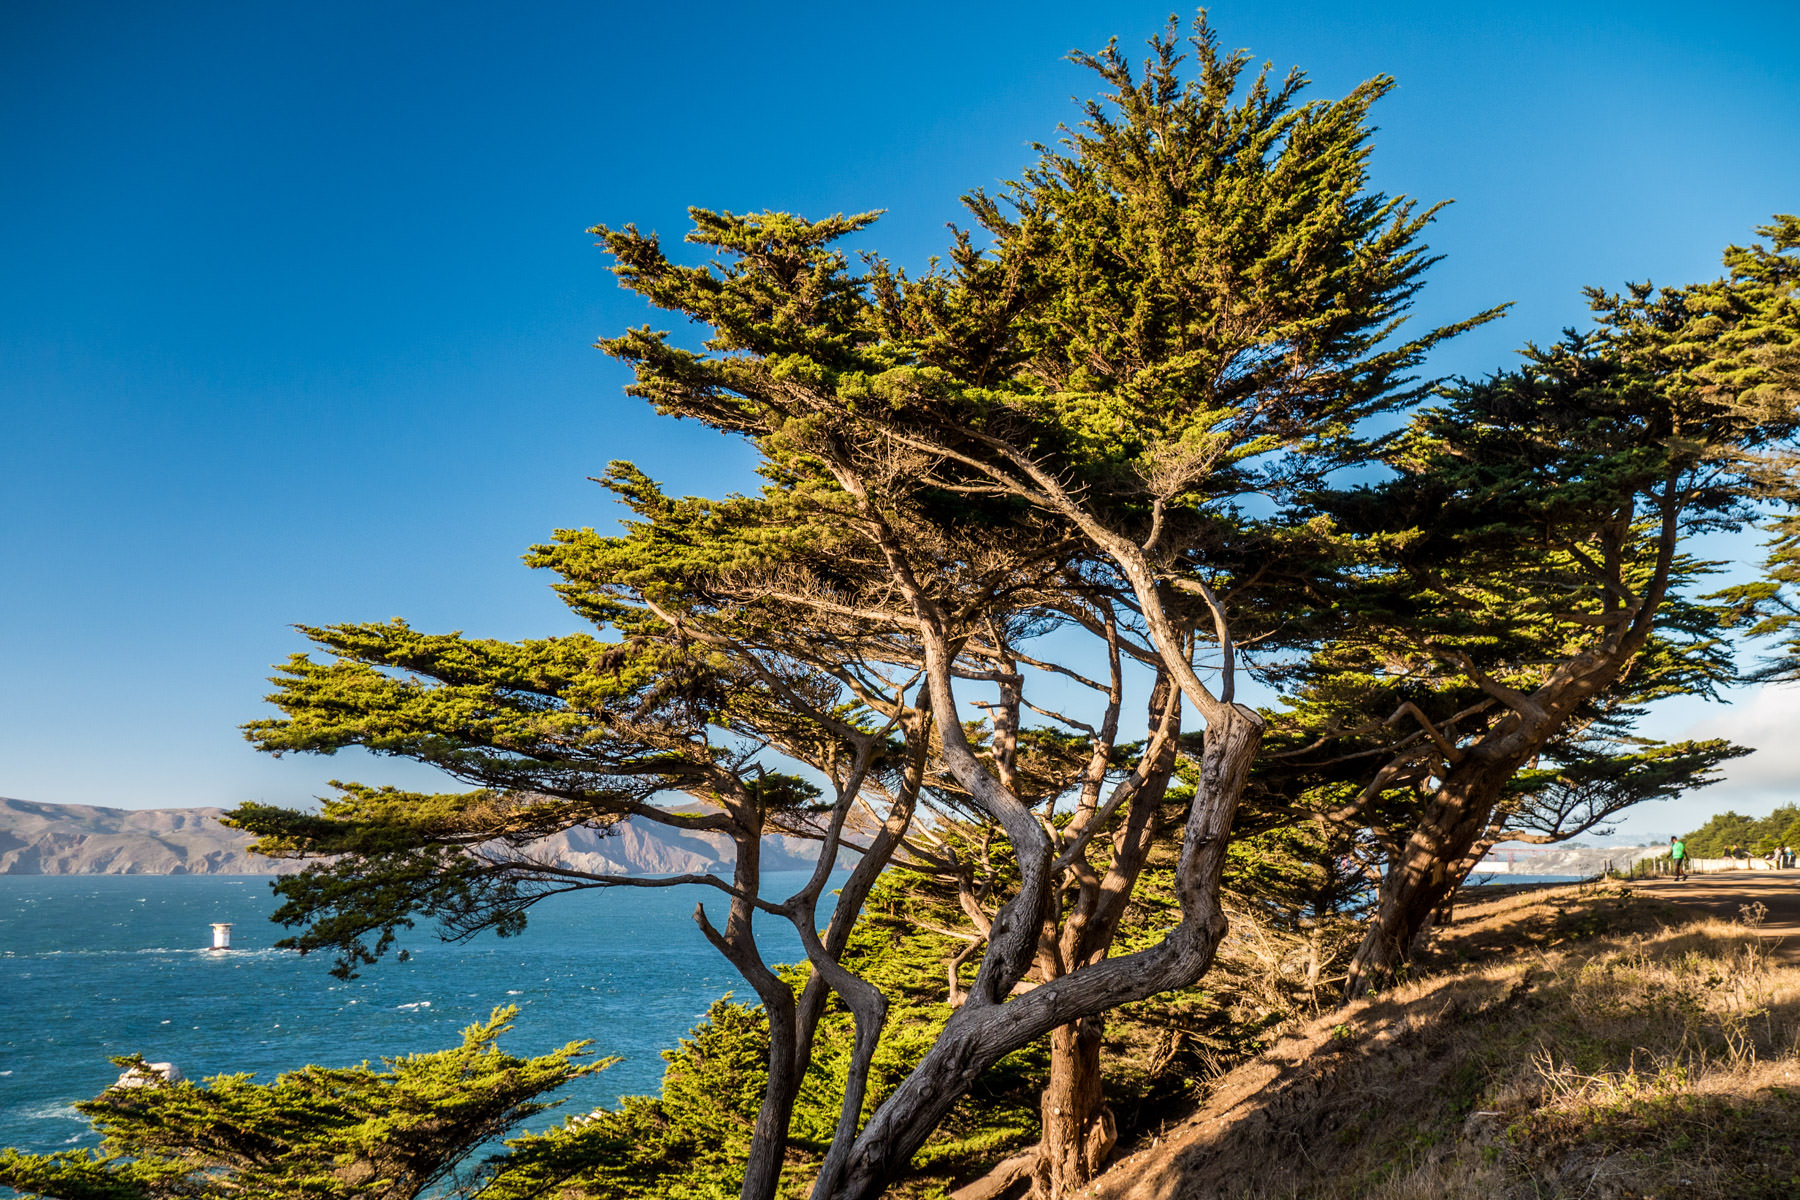 Windswept trees cling to the side of cliffs overlooking the Golden Gate along the Coastal Trail at San Francisco's Lands End.